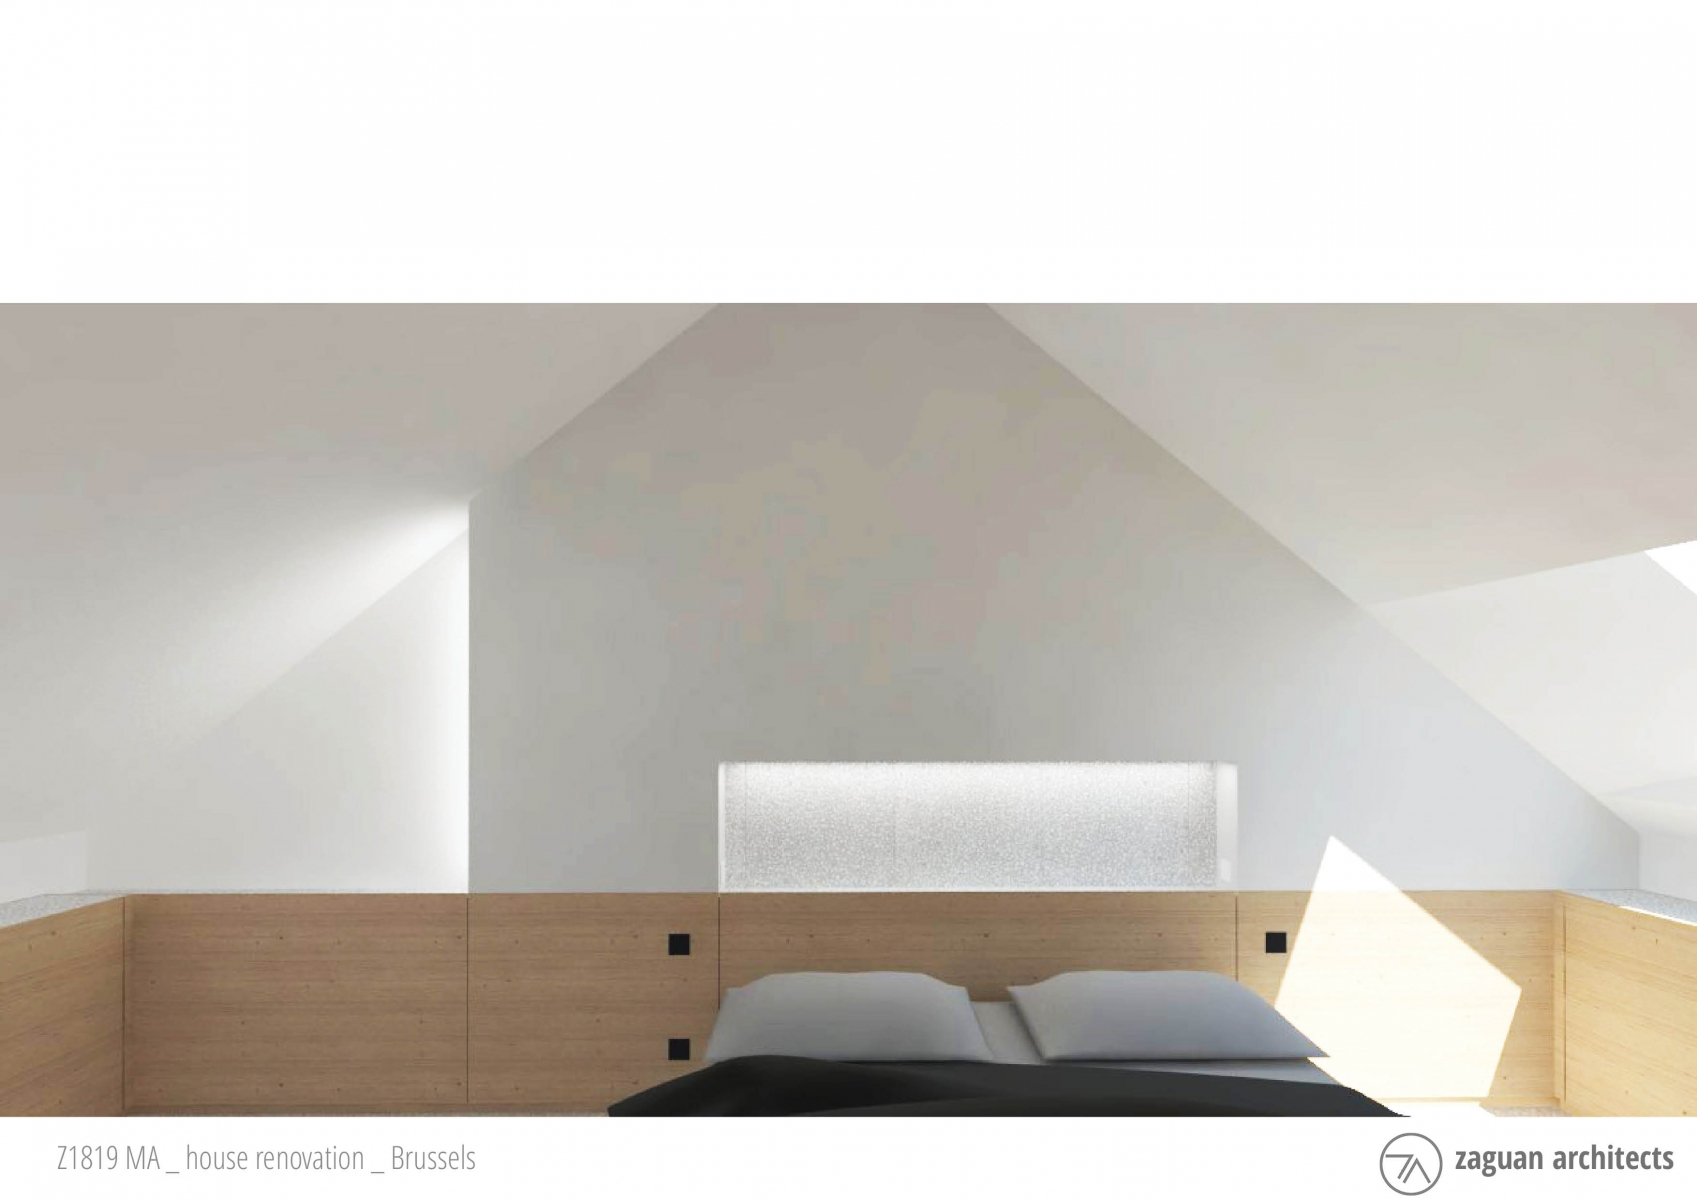 andres gonzalez gil zaguanarchitects house renovation brussels Z1819 02